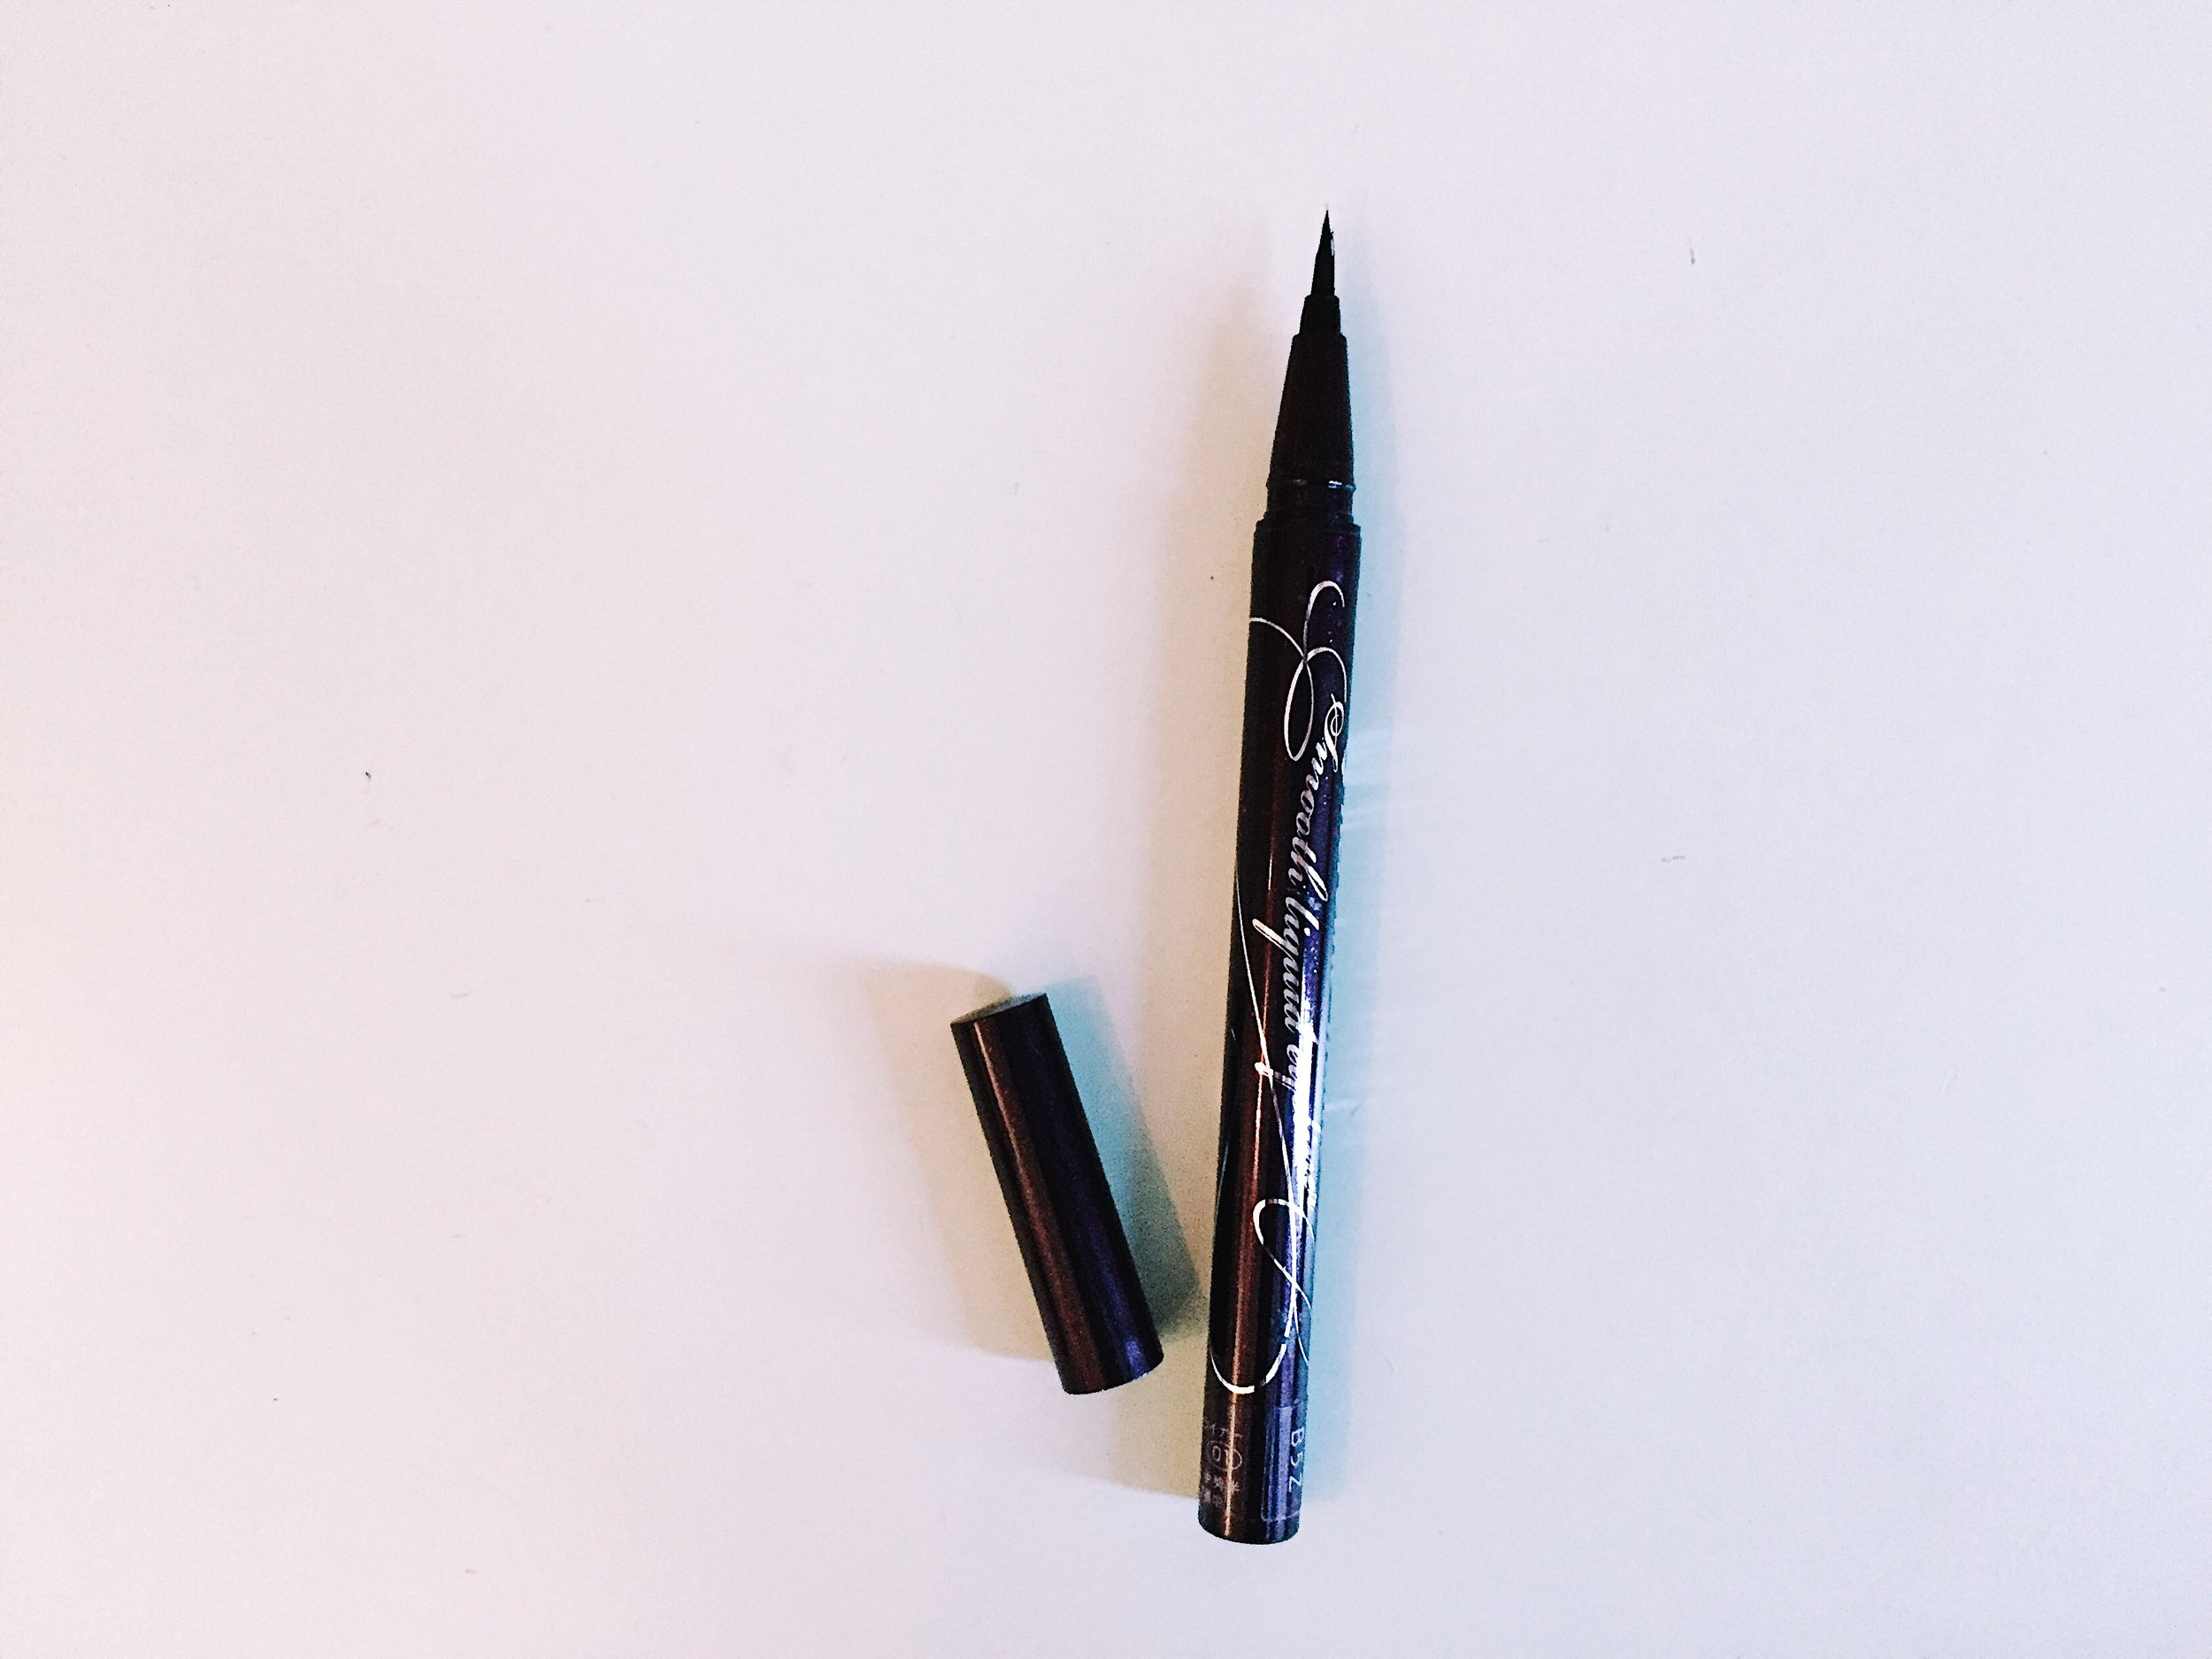 KissMe Heroine - A Japanese eyeliner that is super popular amongst the Asian beautify community Pros: Tiny tip allows for the highest precision for drawing the thinnest lines. Super waterproof—can withstand the pool and tears alike. Very dark. Cons: The brush tip can splay easily if you're not careful with the cap. Difficult to get in store in the US. The packaging is not the most aesthetic.